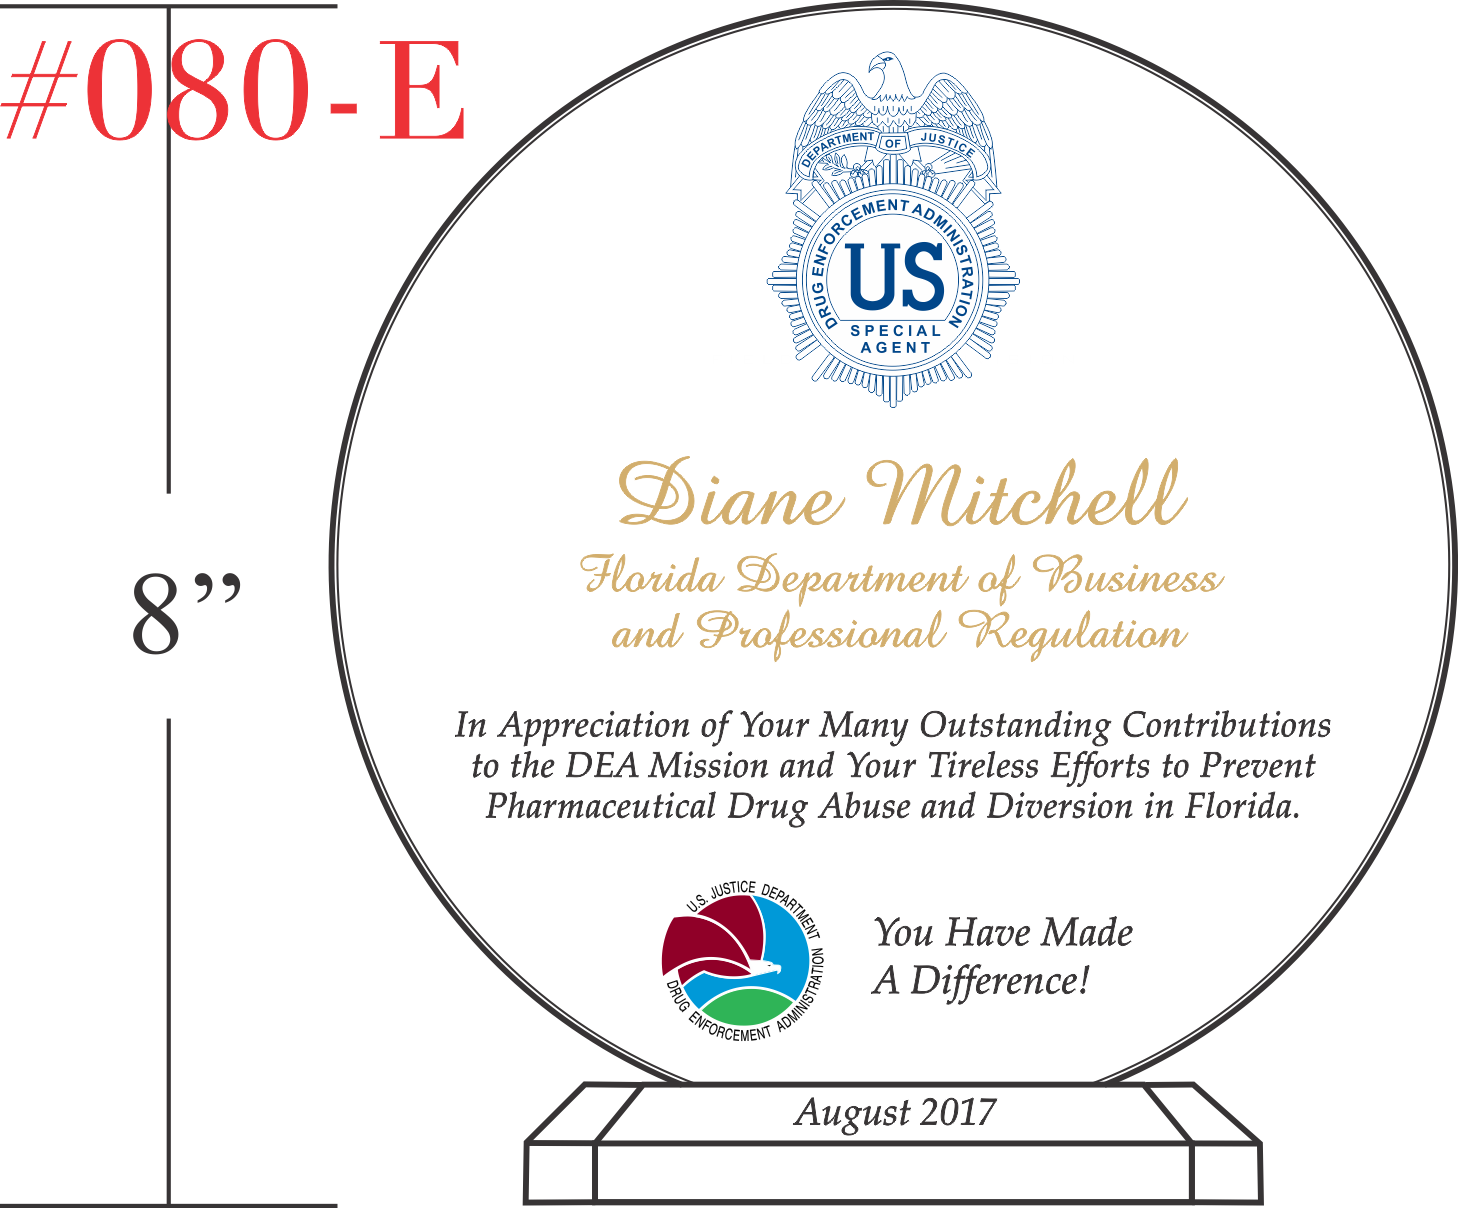 award for outstanding contributions